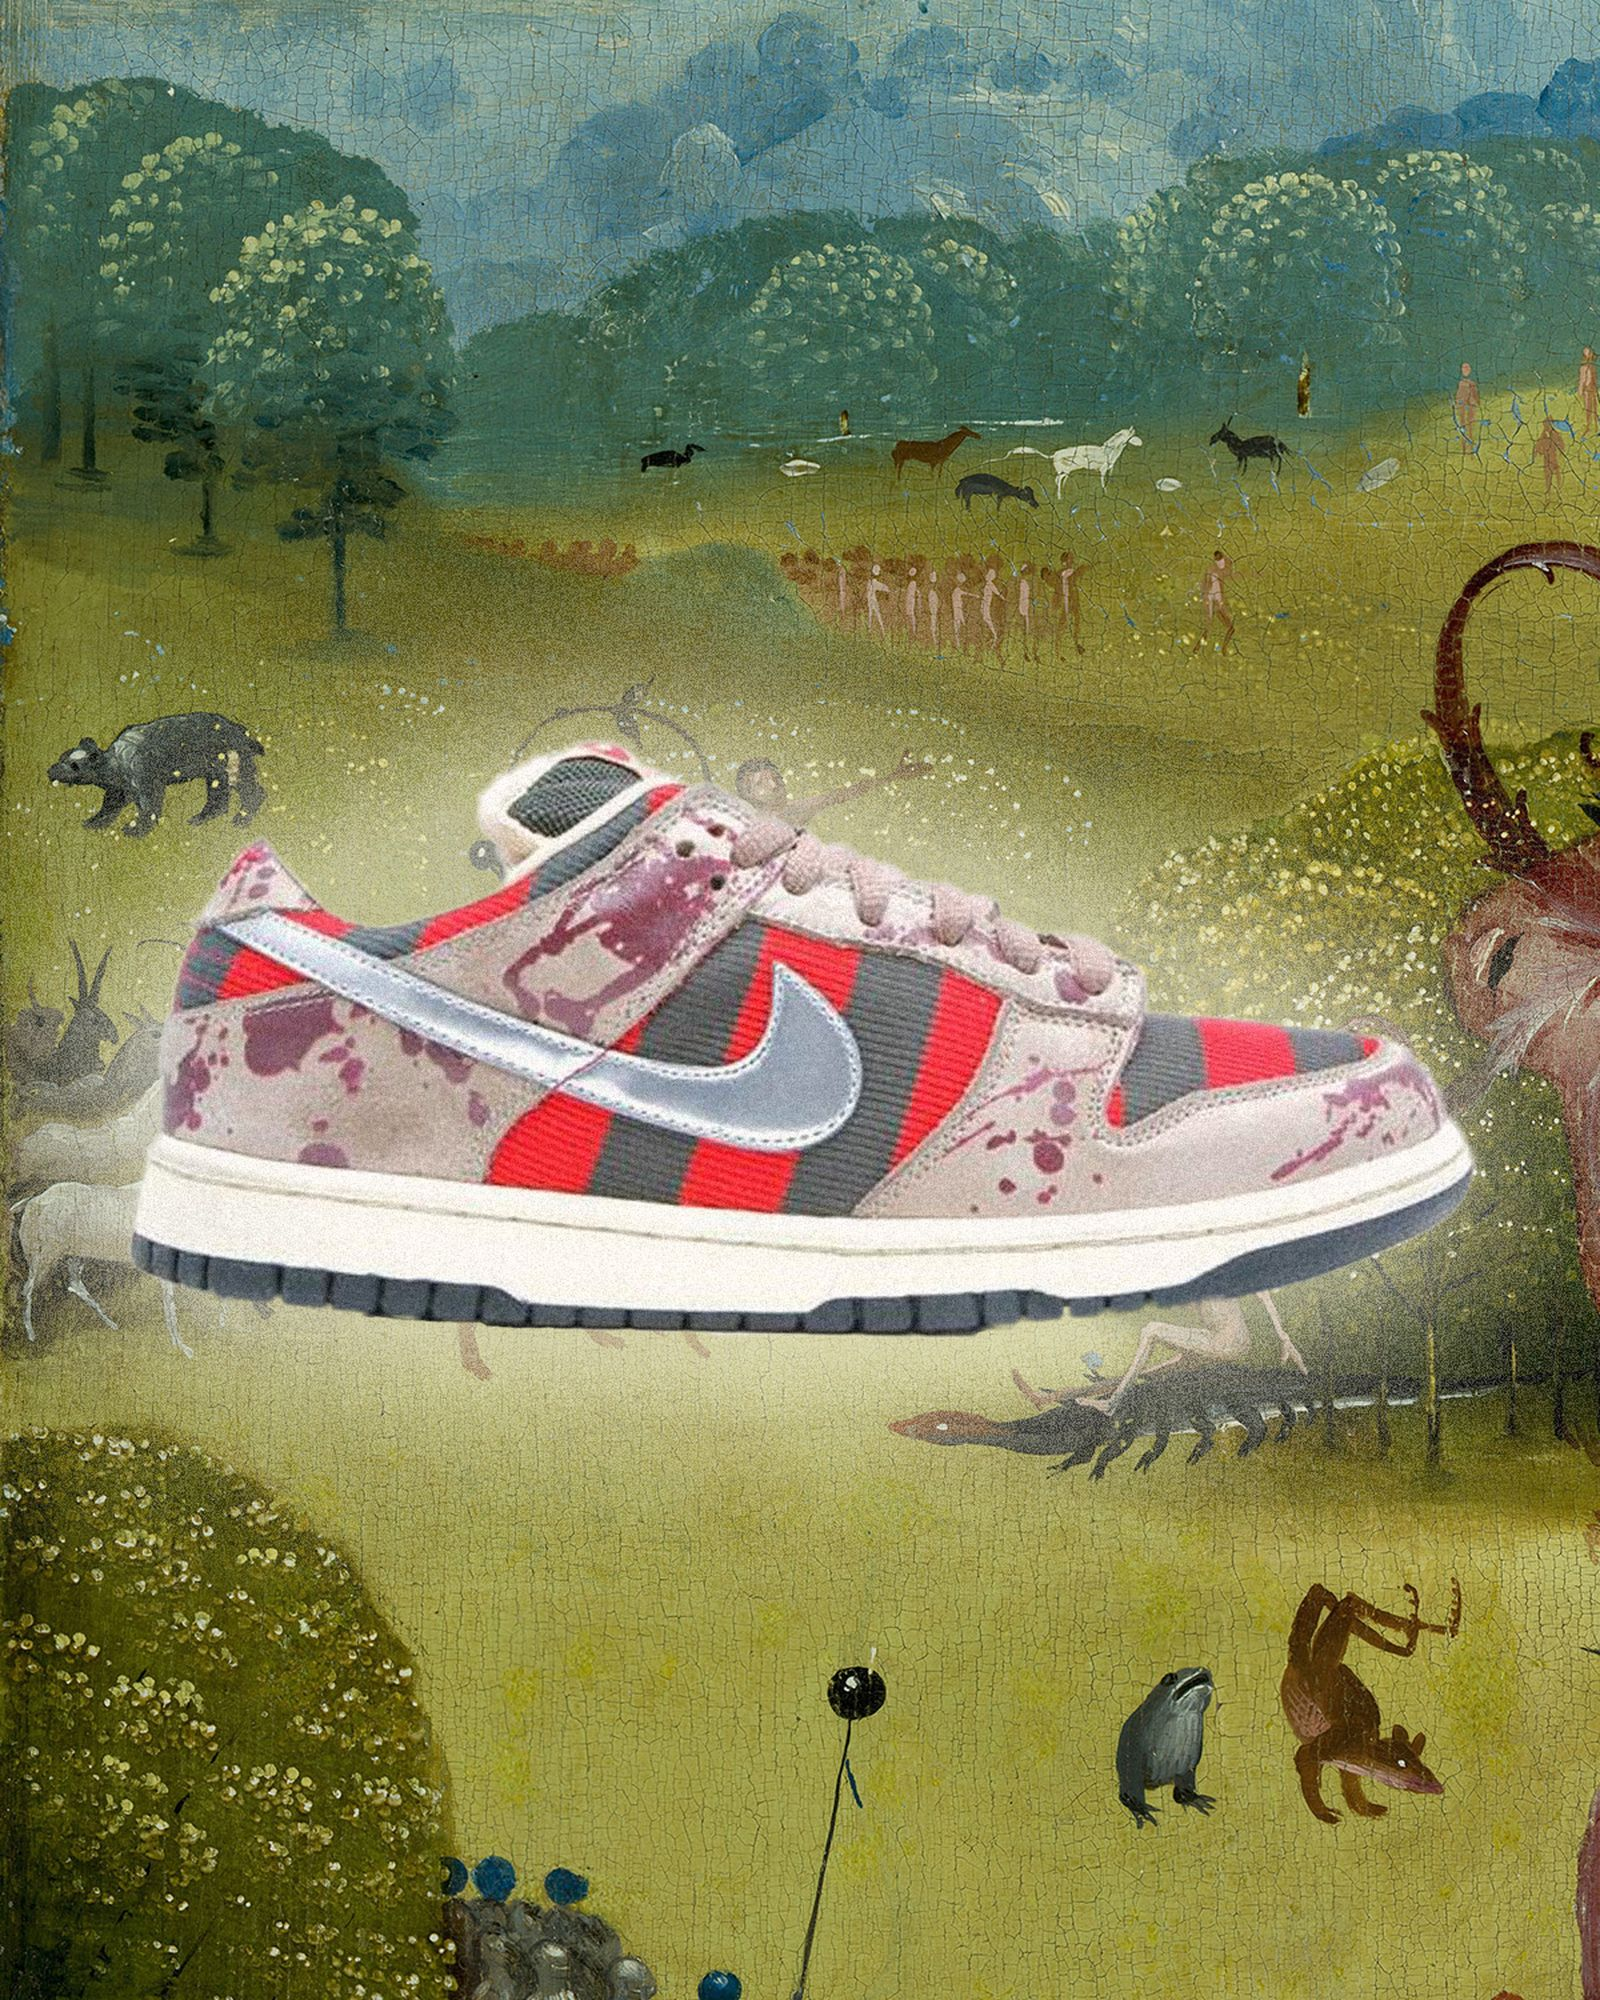 07-Nike-Dunk-SB-Low-Freddy-Krueger